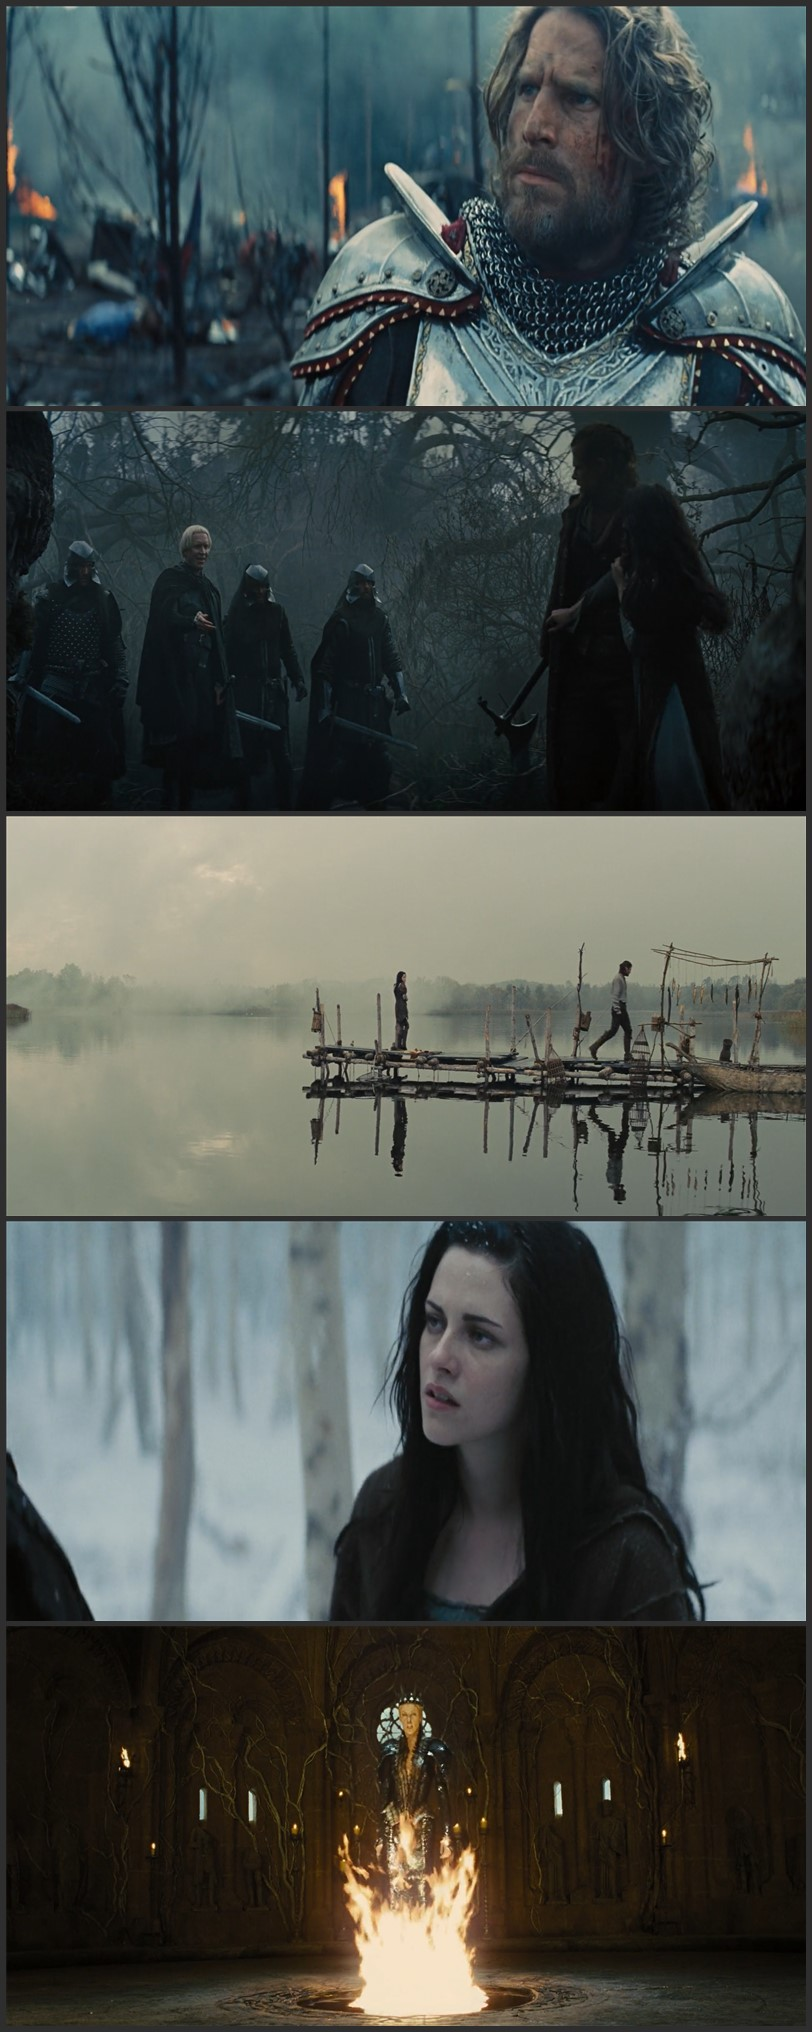 snow white and the huntsman in hindi 720p online